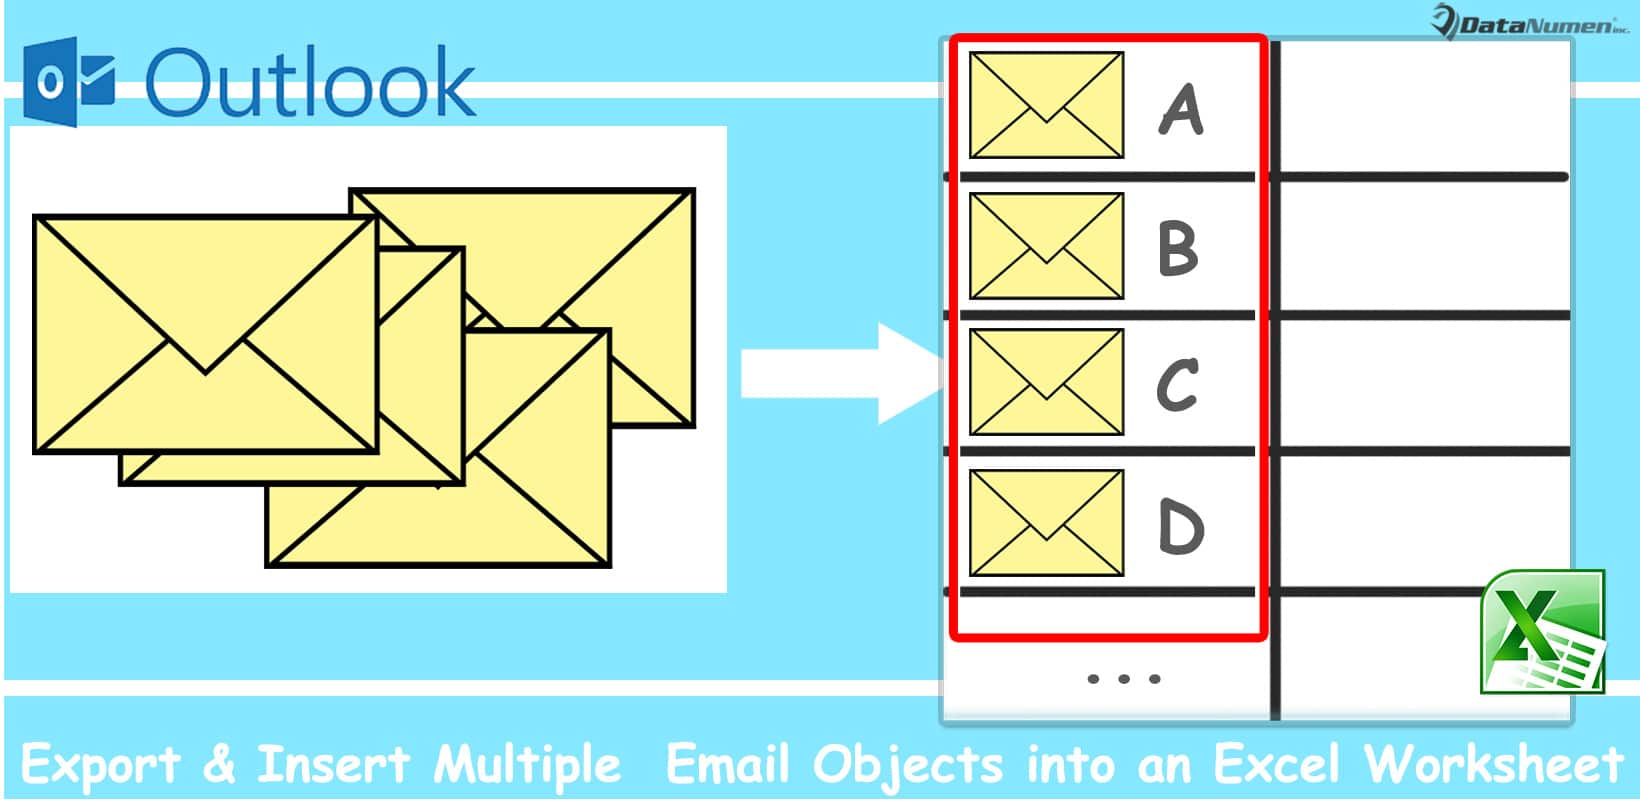 Batch Export & Insert Multiple Outlook Email Objects into an Excel Worksheet